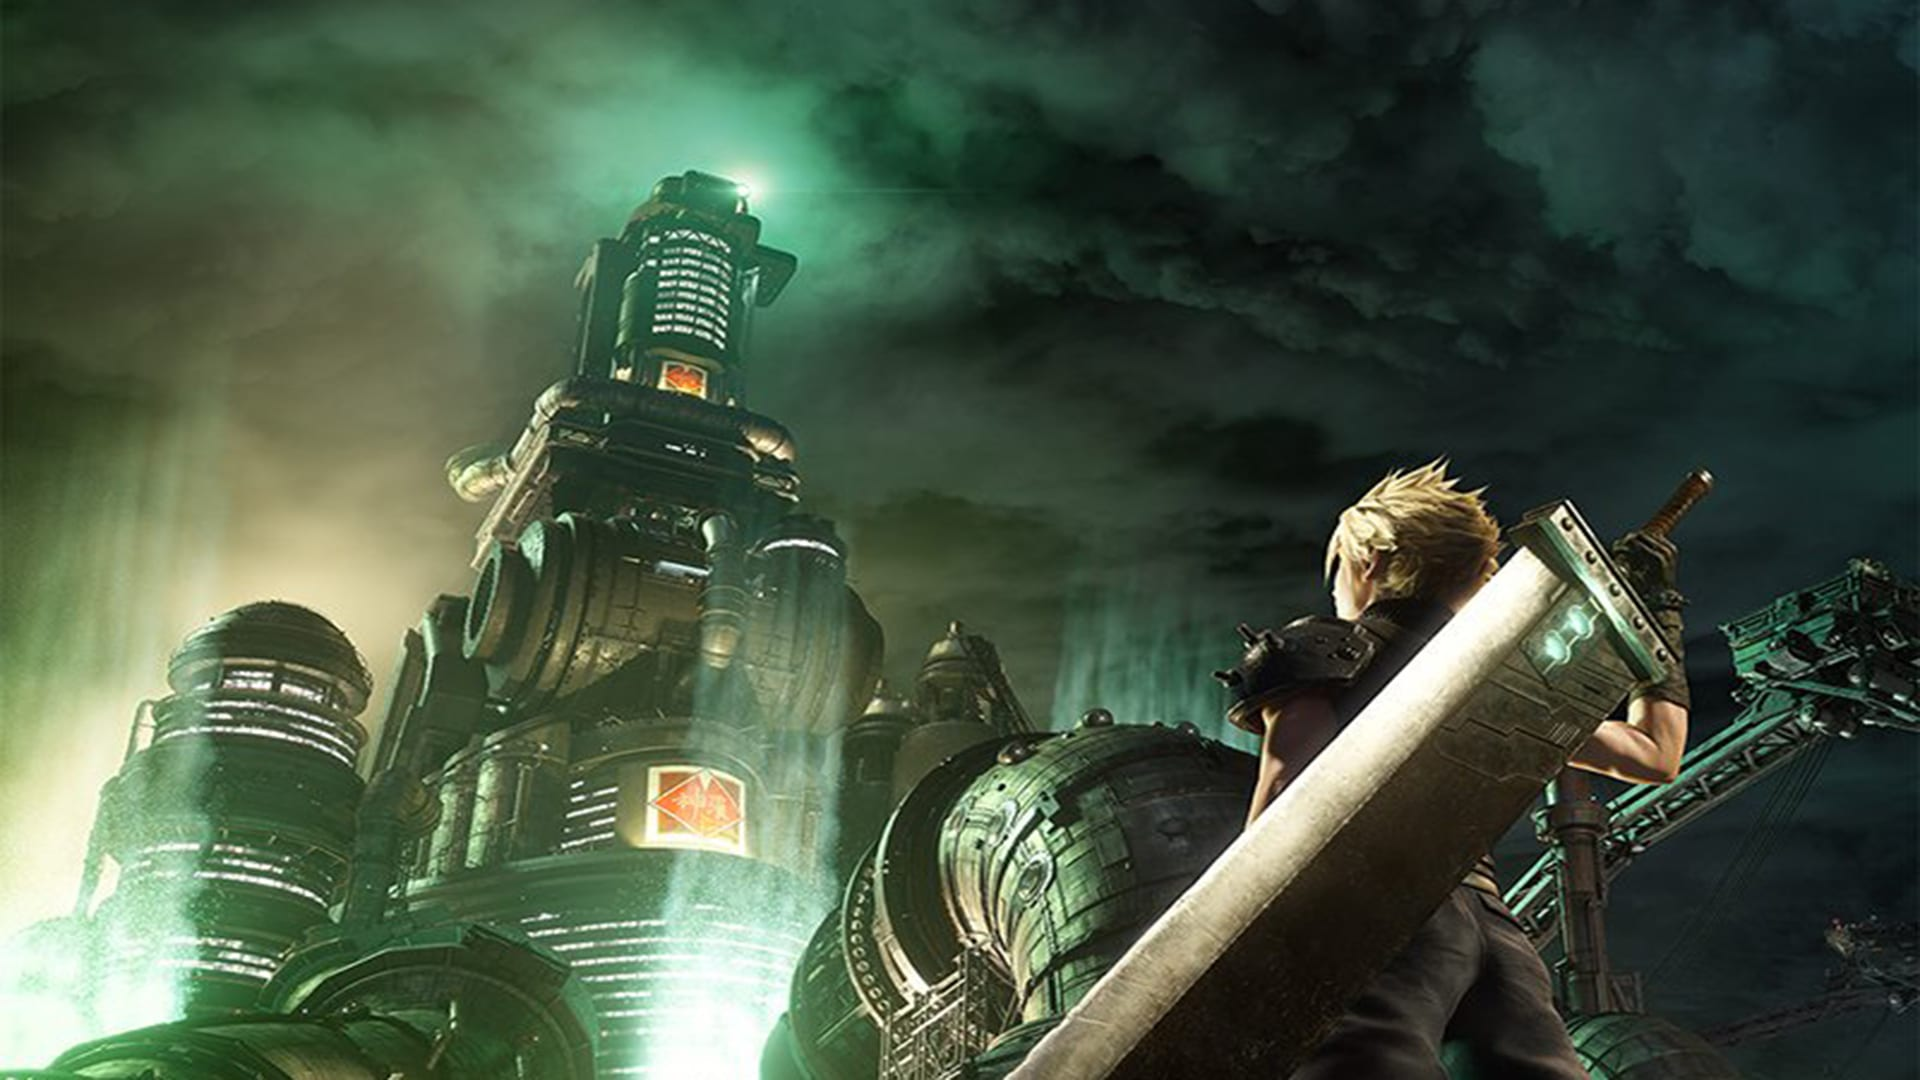 Final Fantasy 7 Remake, Are There Cheats? Answered